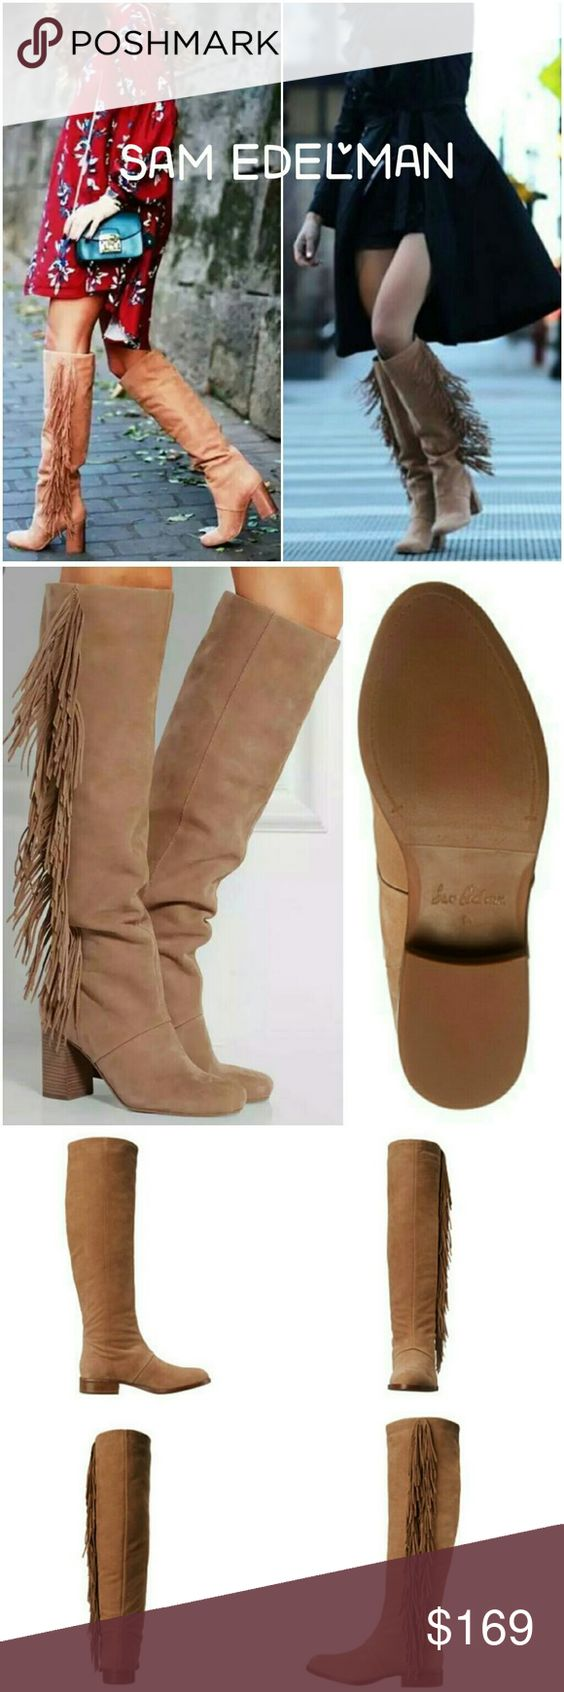 Sam Edelman Josephine fringe boots sz 6 Originally $275  New in original box!  Genuine leather upper. Pull-on construction. Fringe detail cascades down side. Man-made lining and insole. Stacked block heel. Synthetic outsole. Imported.  Heel Height: 1 1?4 in Shaft: 19 in  Complete your boho look with these boots. Perfect for fall & winter.               Tags: anthropologie, free people, Stuart Weitzman, Jeffrey campbell, Sam Edelman boho boots, fringes, bargain Sam Edelman Shoes